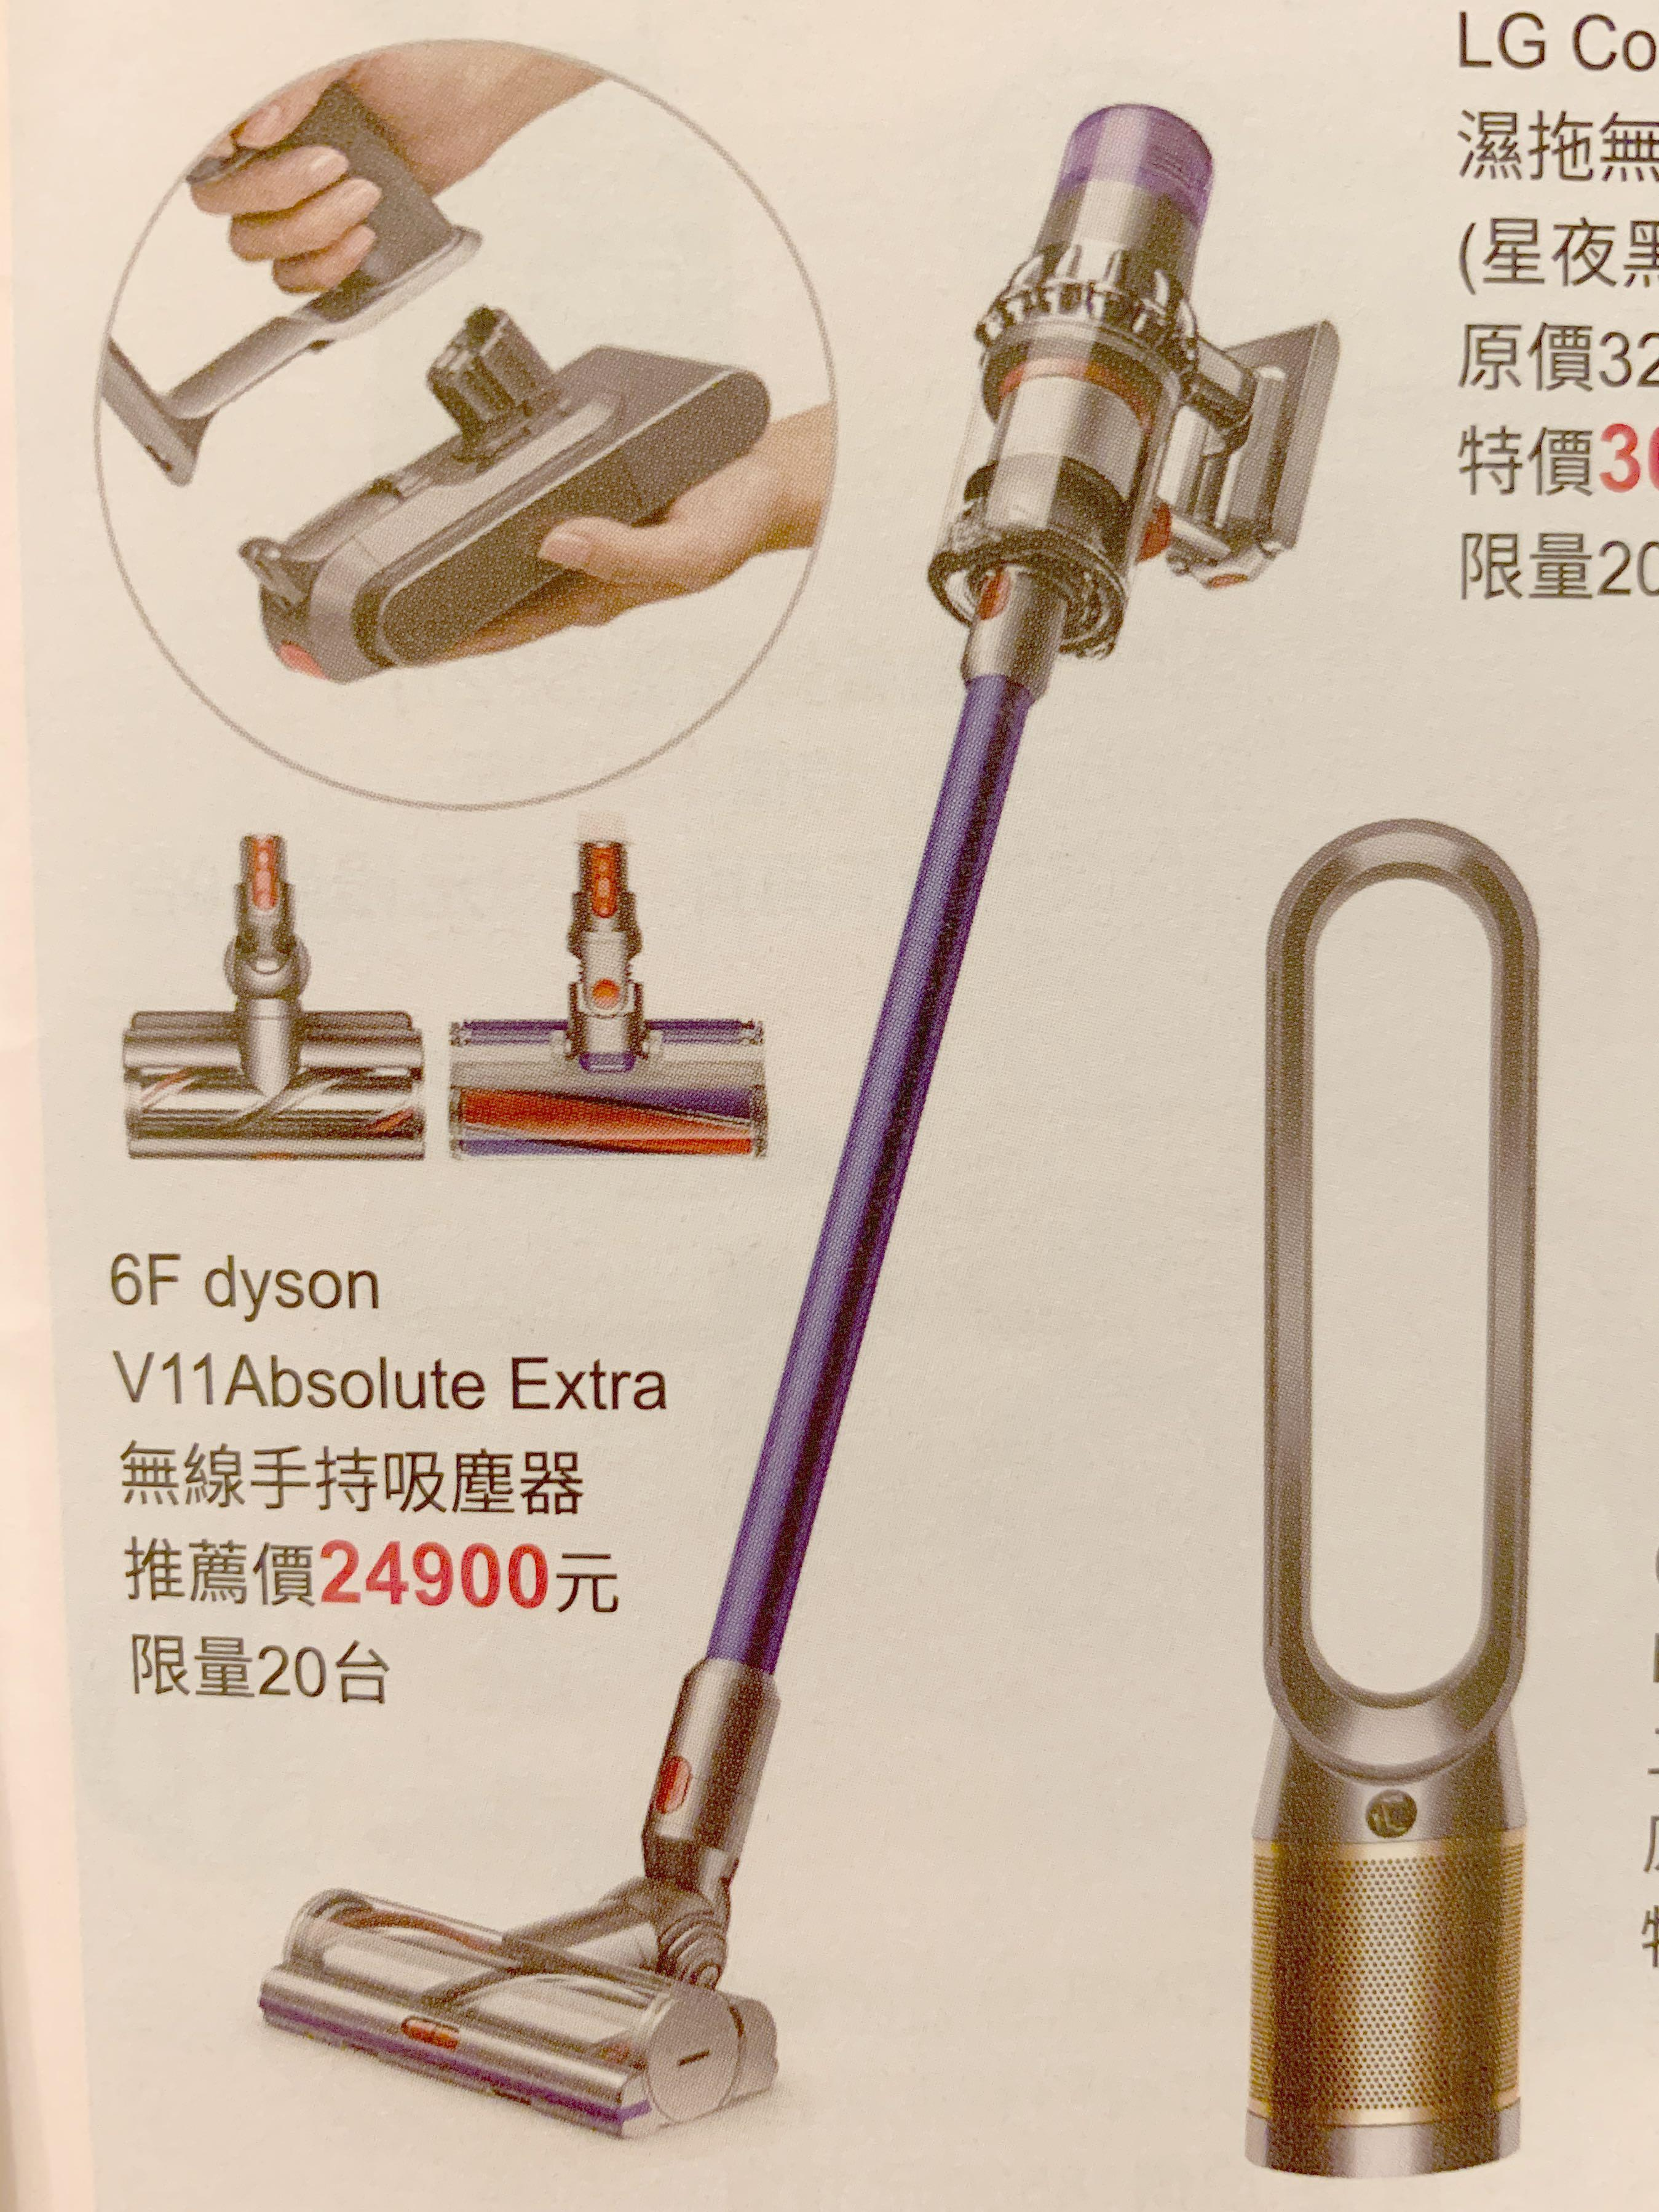 Dyson V11™Absolute Extra 無線吸塵器